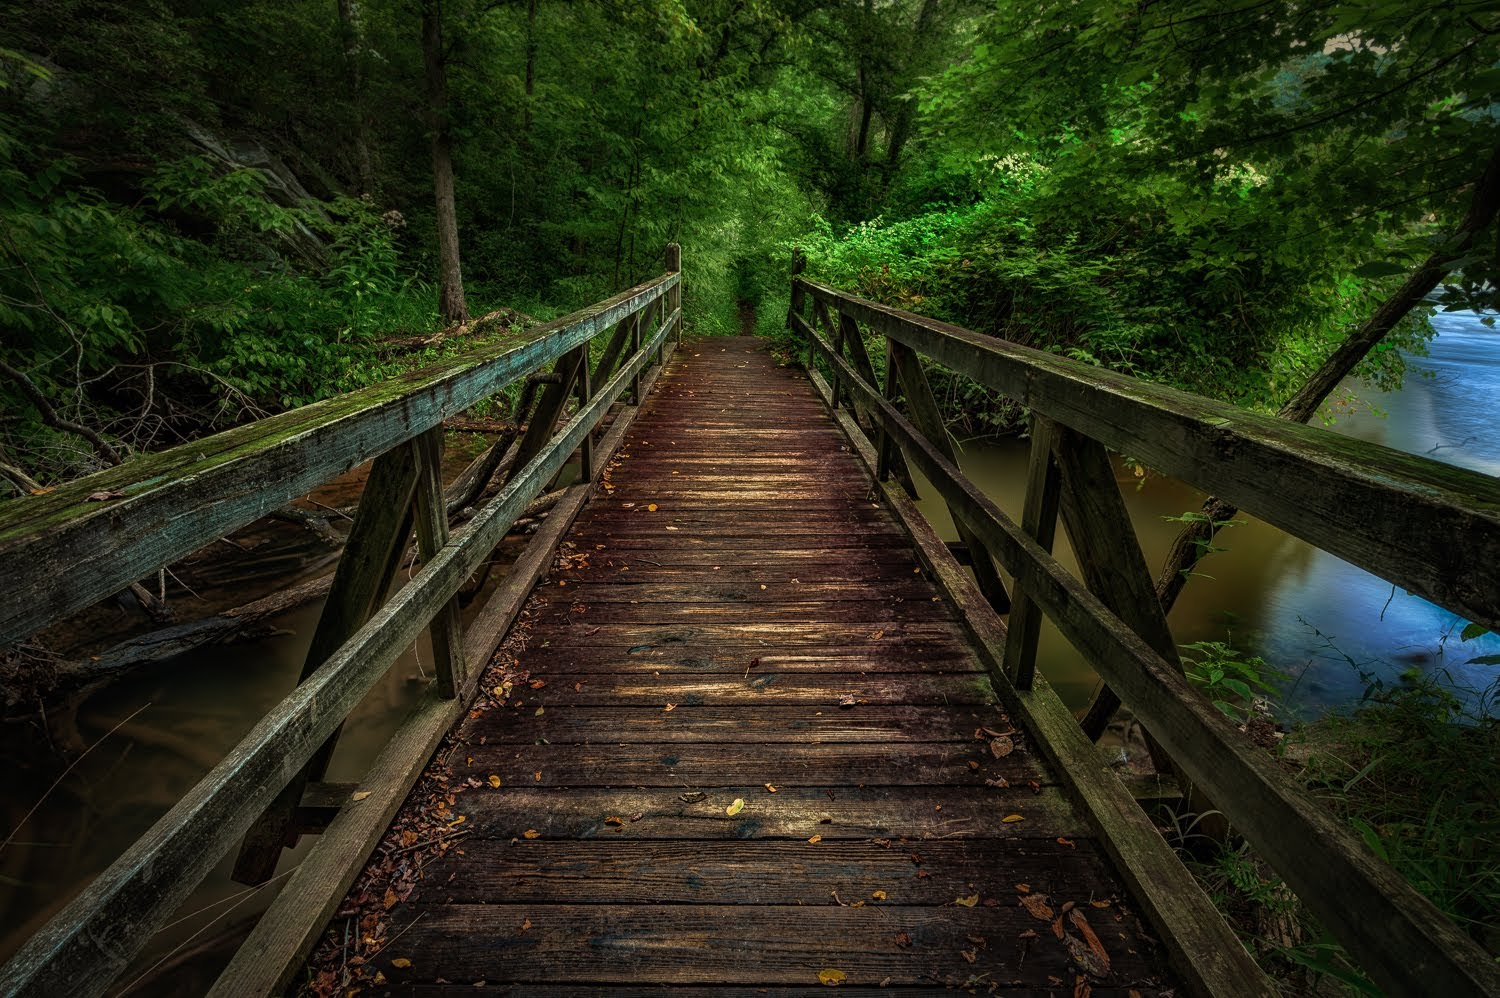 photography wallpaper,nature,bridge,nature reserve,natural environment,tree